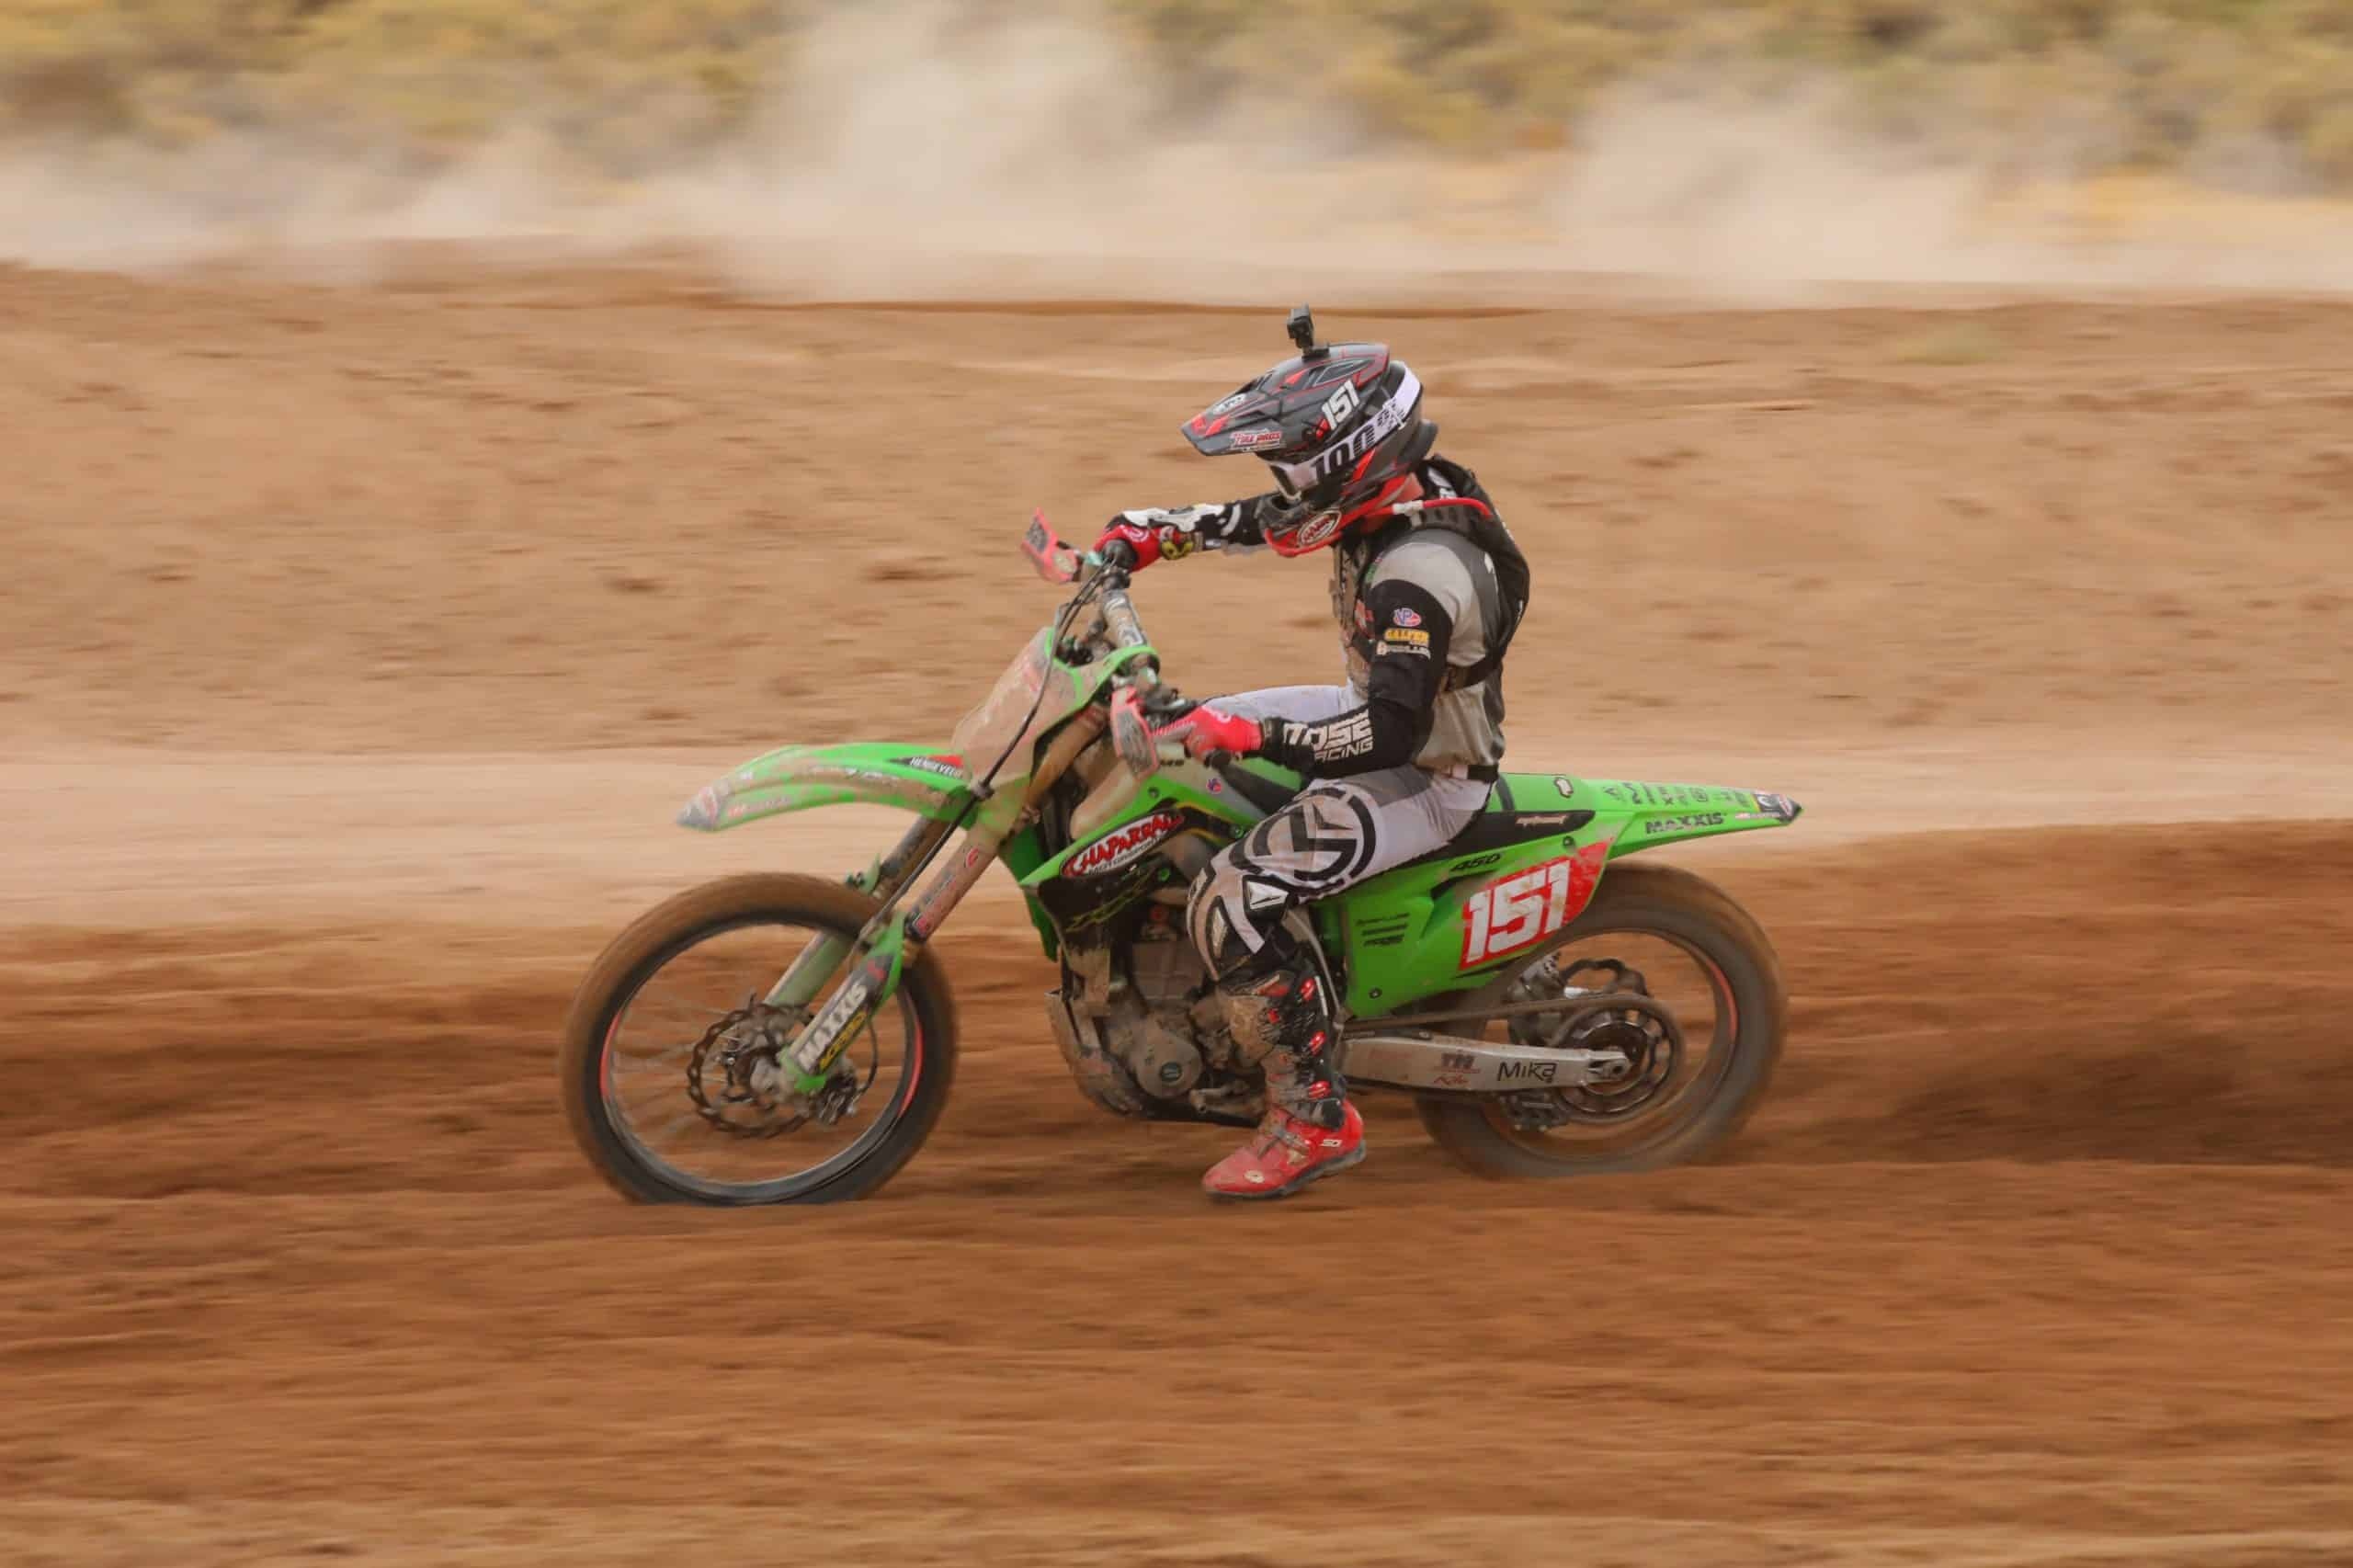 Clay Hengeveld riding his kx450 at the 2020 blythe worcs race